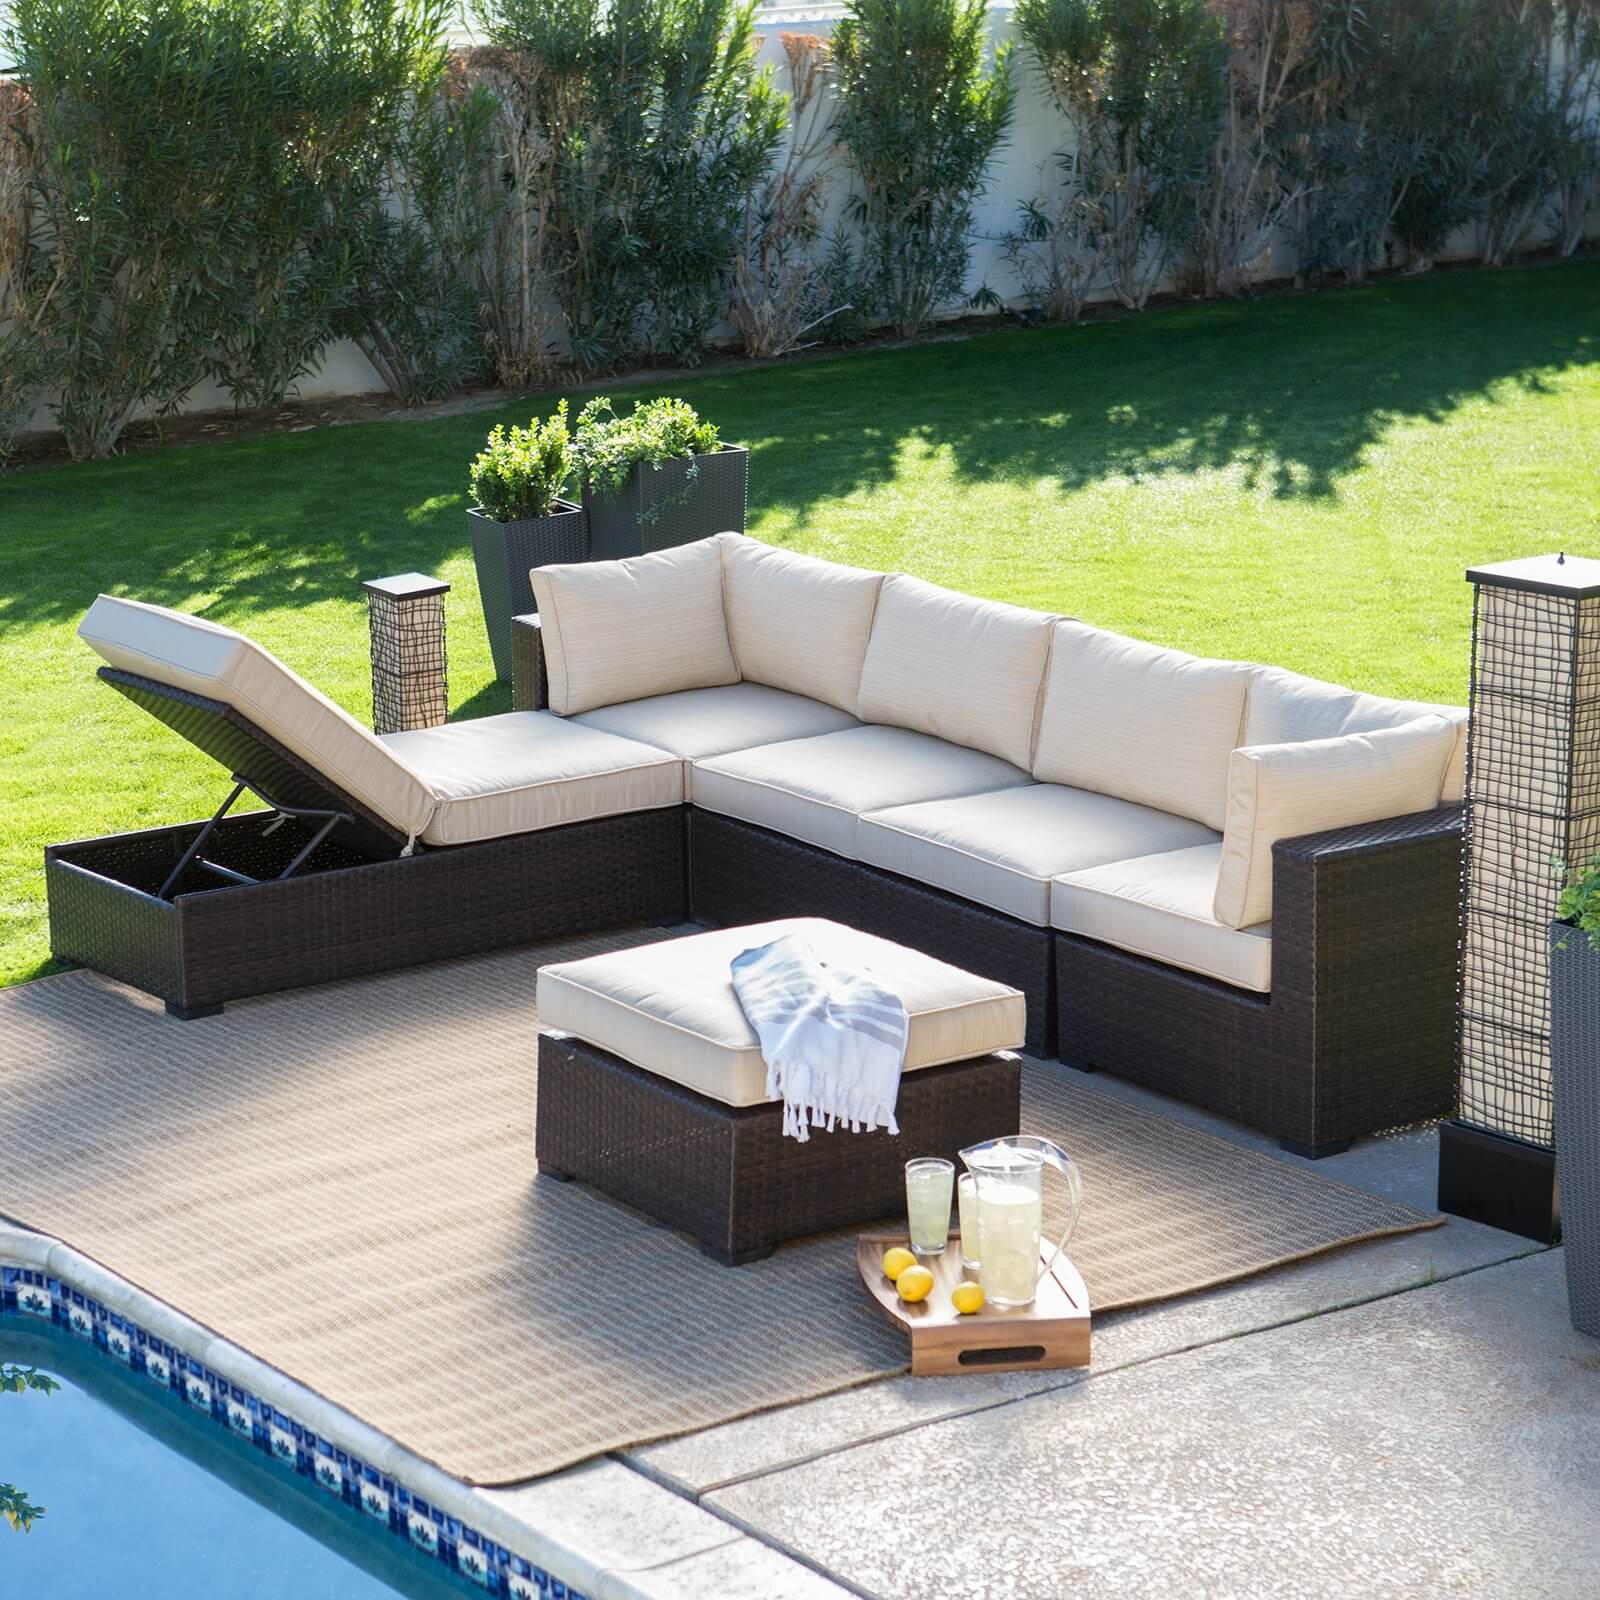 25 Awesome Modern Brown All Weather Outdoor Patio Sectionals : 5Hay large L shaped sectional sofa for outdoor space from www.homestratosphere.com size 1600 x 1600 jpeg 316kB